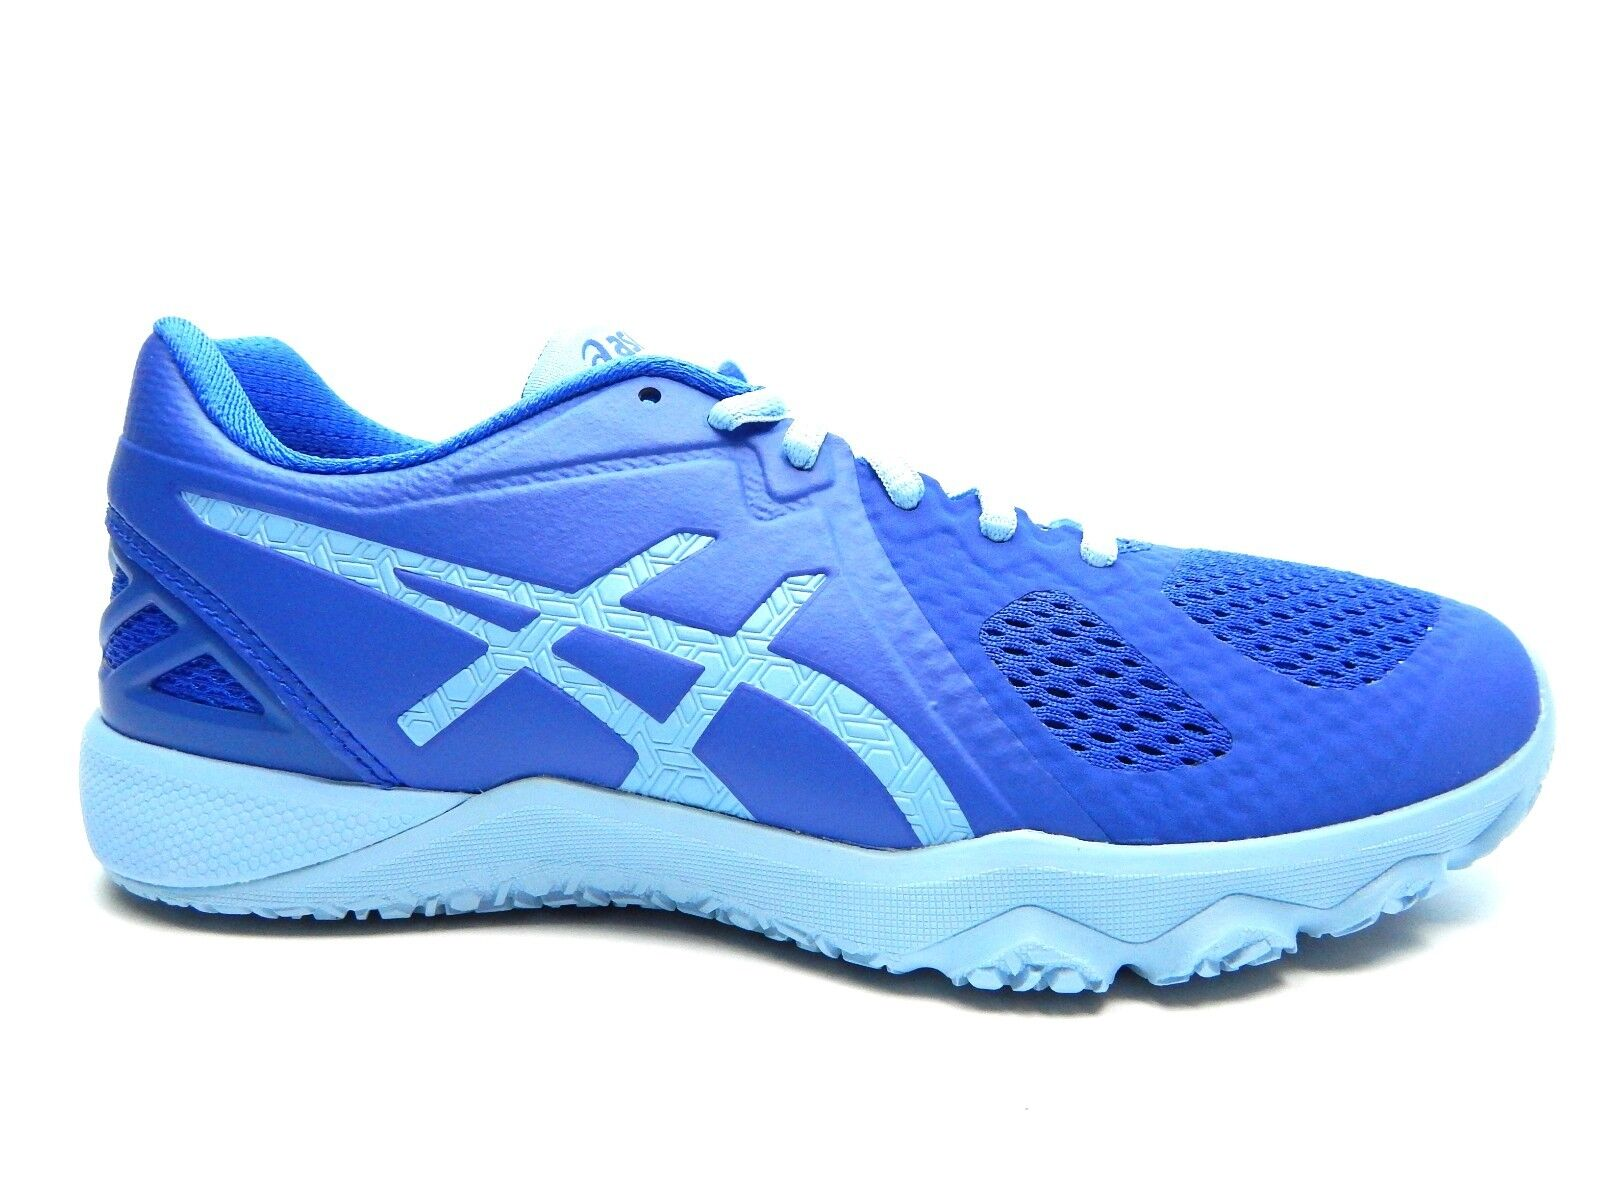 ASICS CONVICTION X S753N 4839 PURPLE AIRY BLUE WOMEN SHOES SIZE 6 TO 9 Comfortable and good-looking